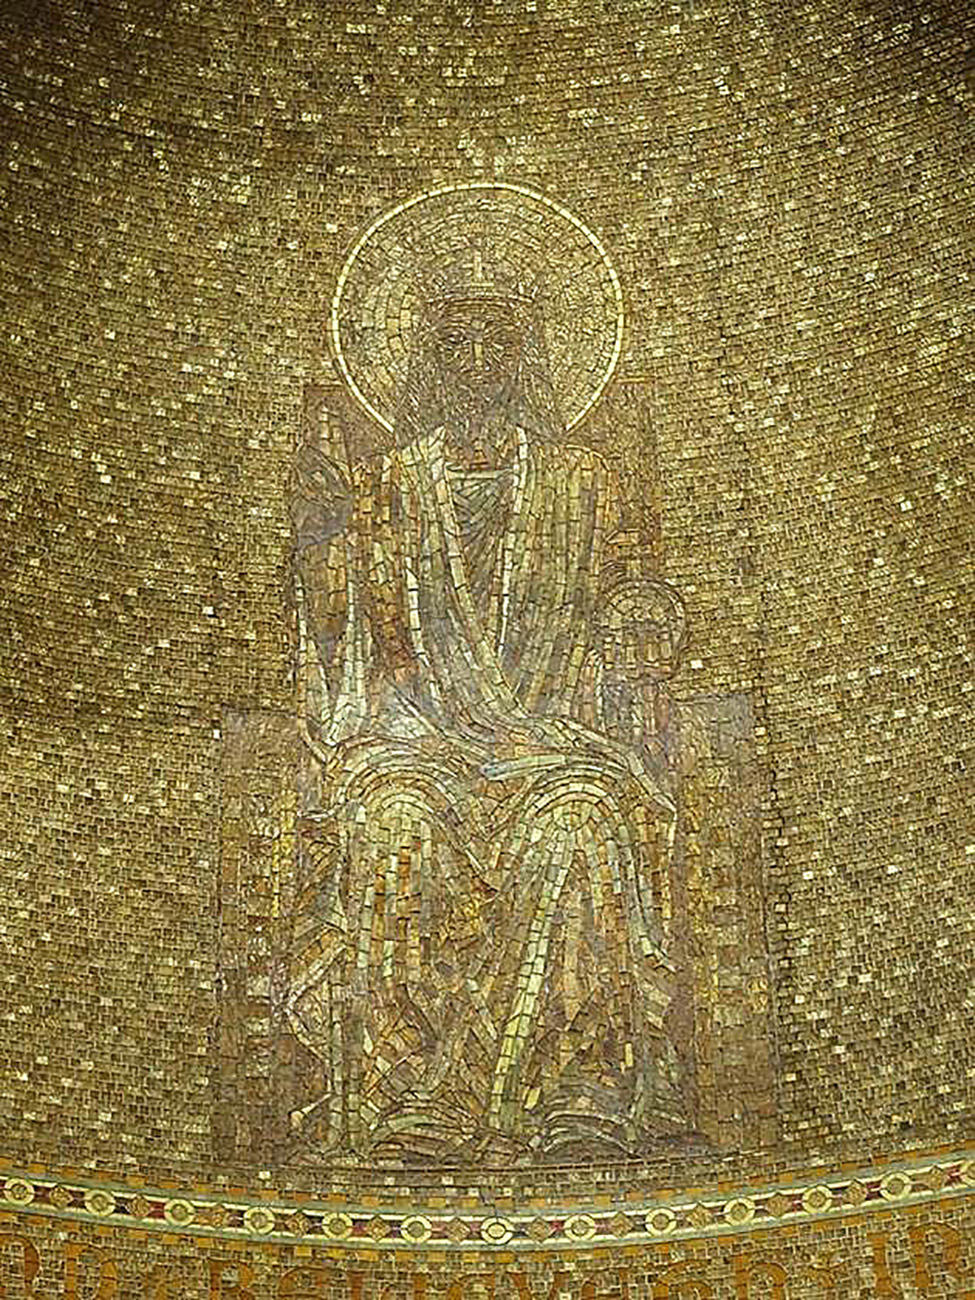 Detail, chancel mosaic depicting Christ enthroned, 1907